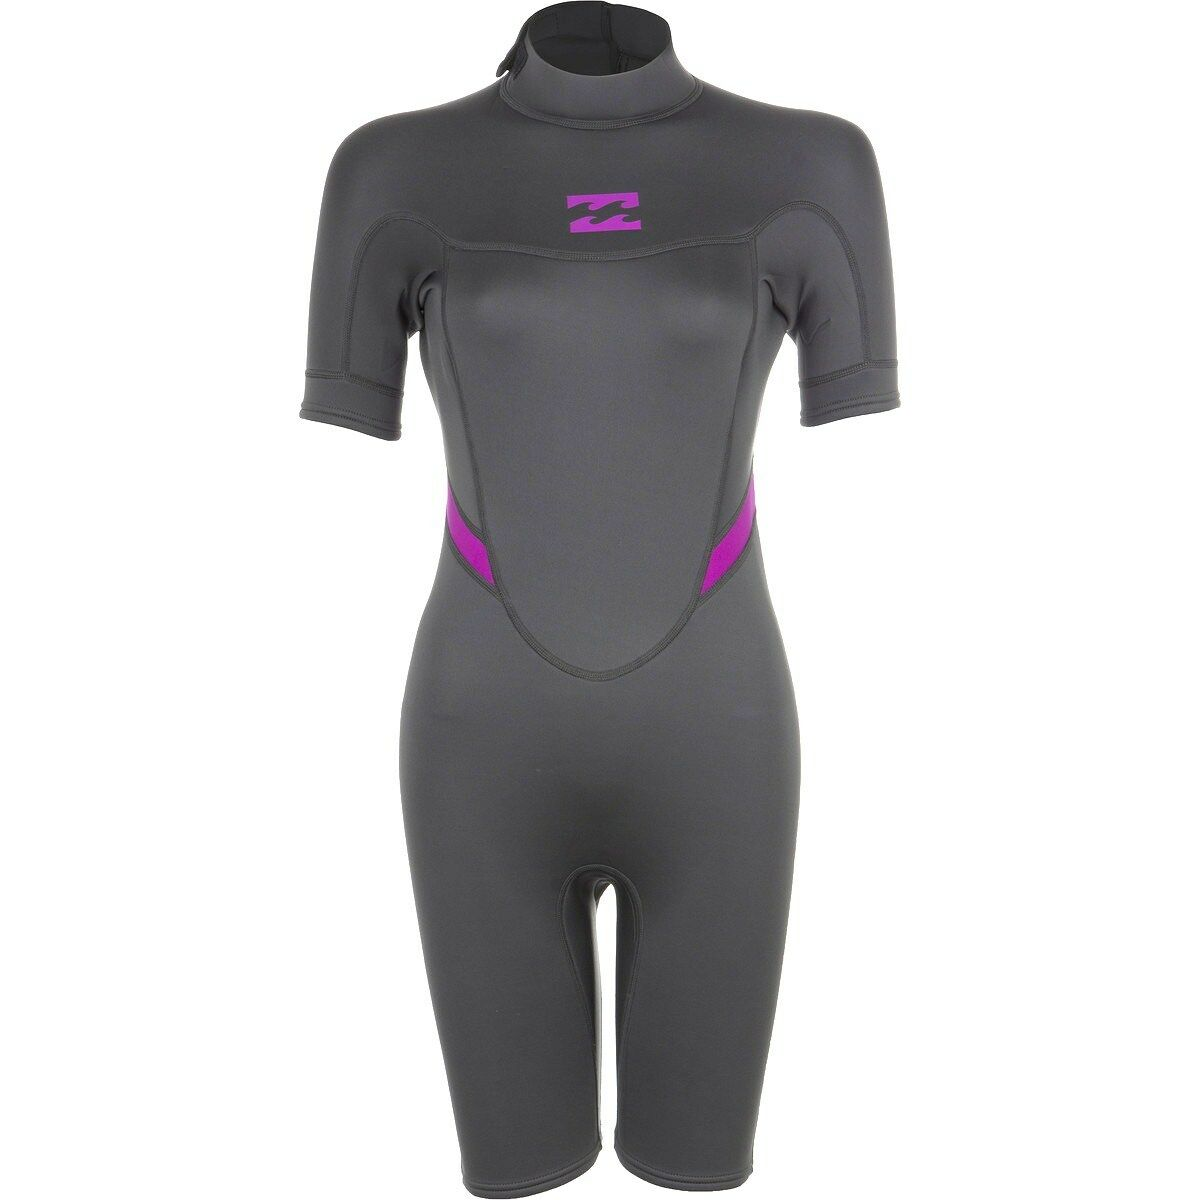 BILLABONG Women's 2mm SYNERGY BZ S S Spring Suit - OFB - Size 10 - NWT